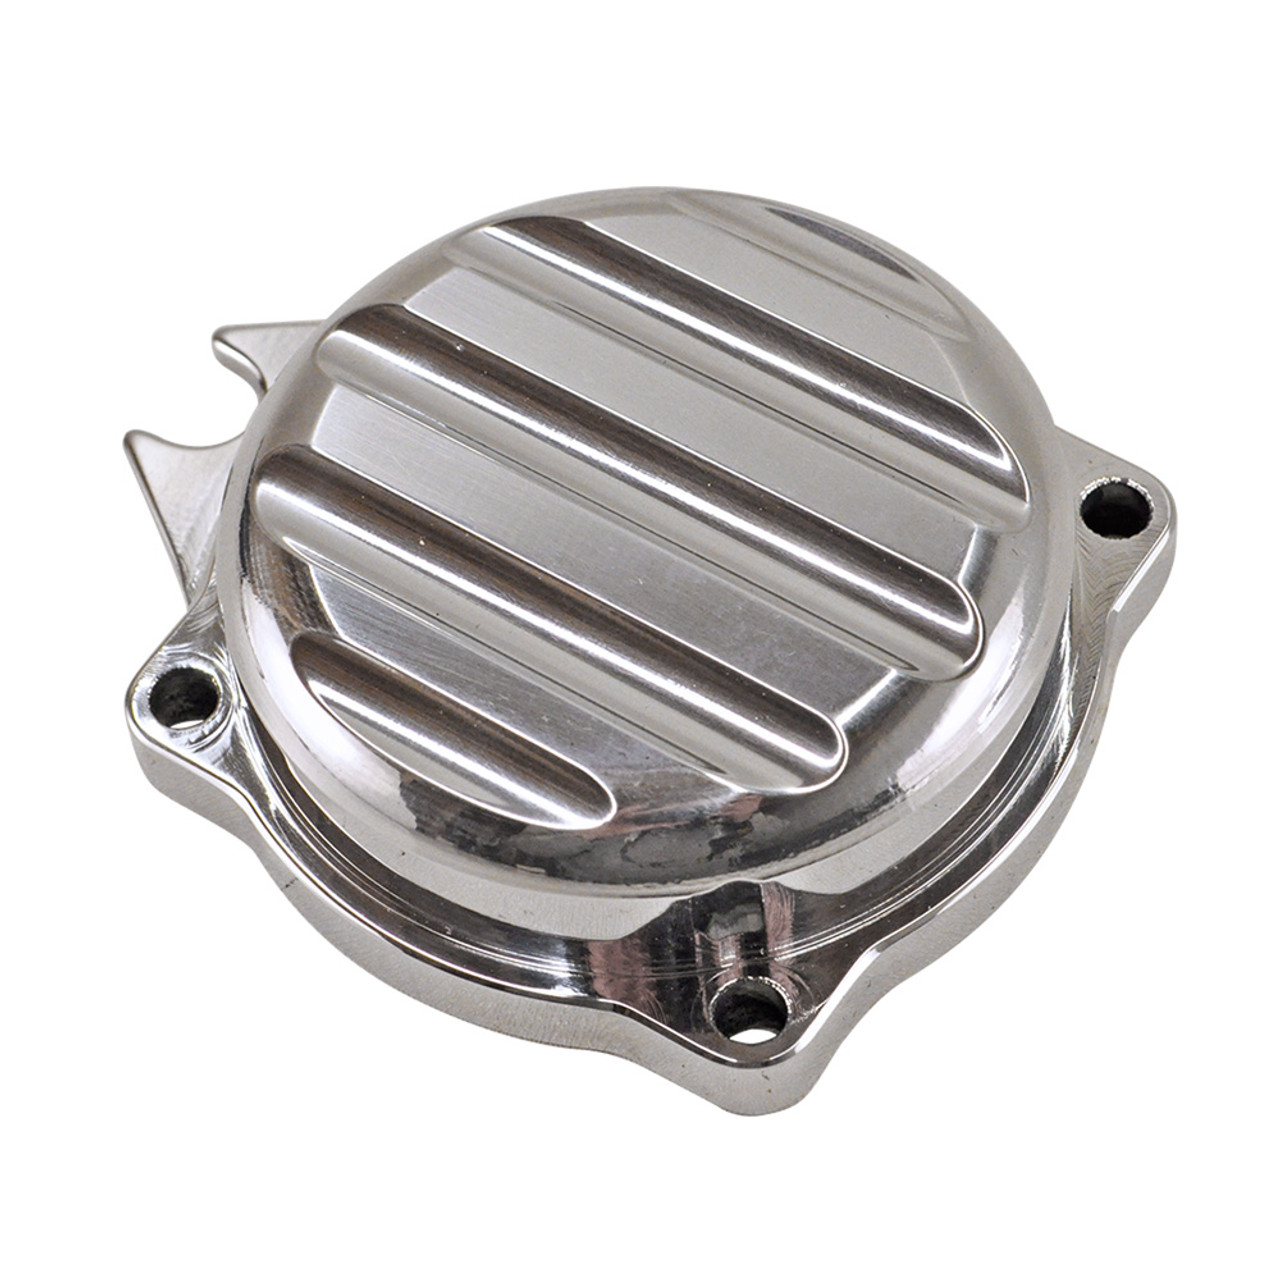 Ricky Bongos USA® CV Carb Top with Integrated Choke Mount Harley Models -  Polished with Ribbed Top - Made In USA